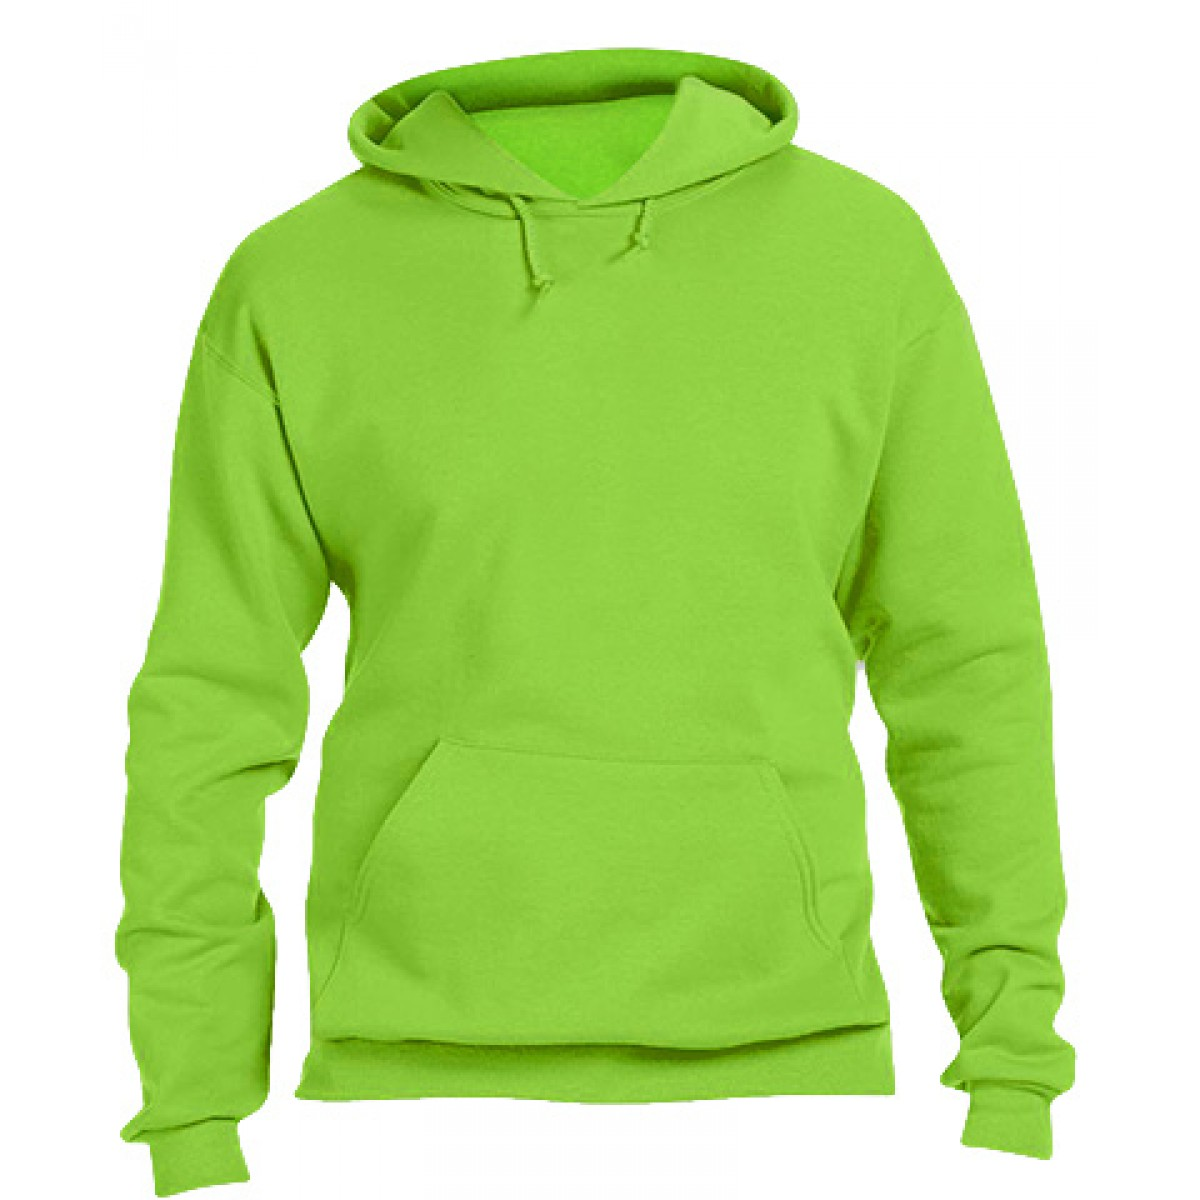 Hooded Sweatshirt 50/50 Heavy Blend -Neon Green-S